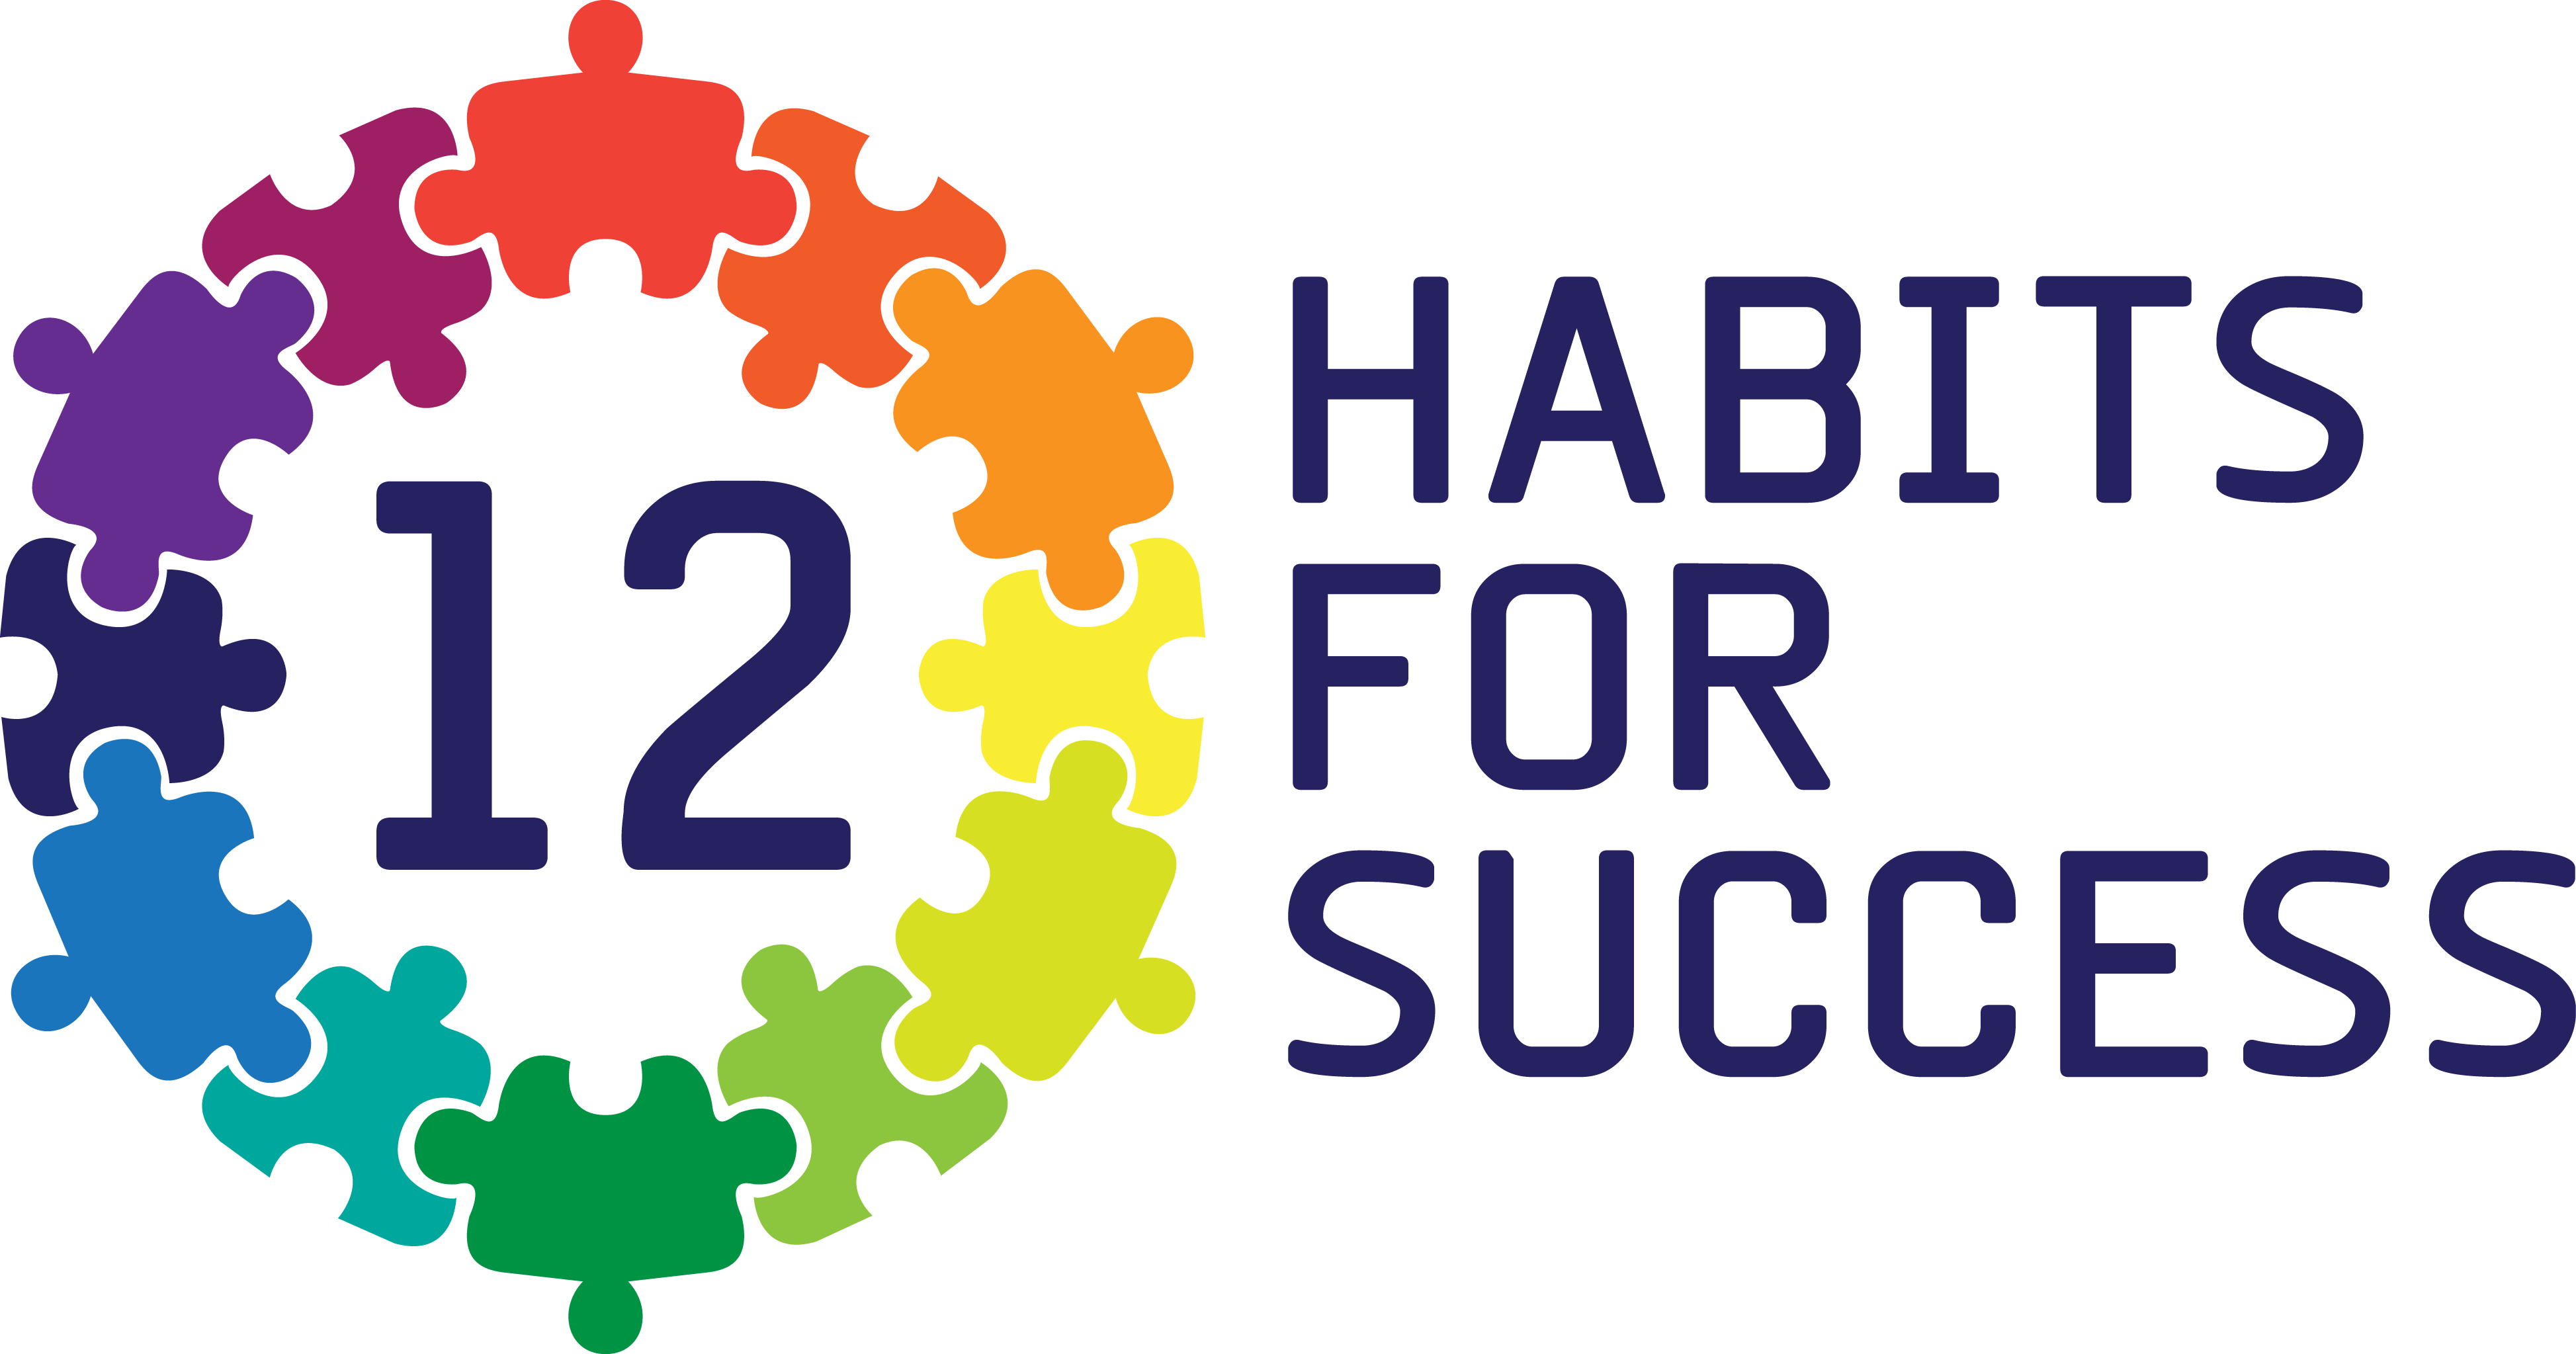 12 habits for success